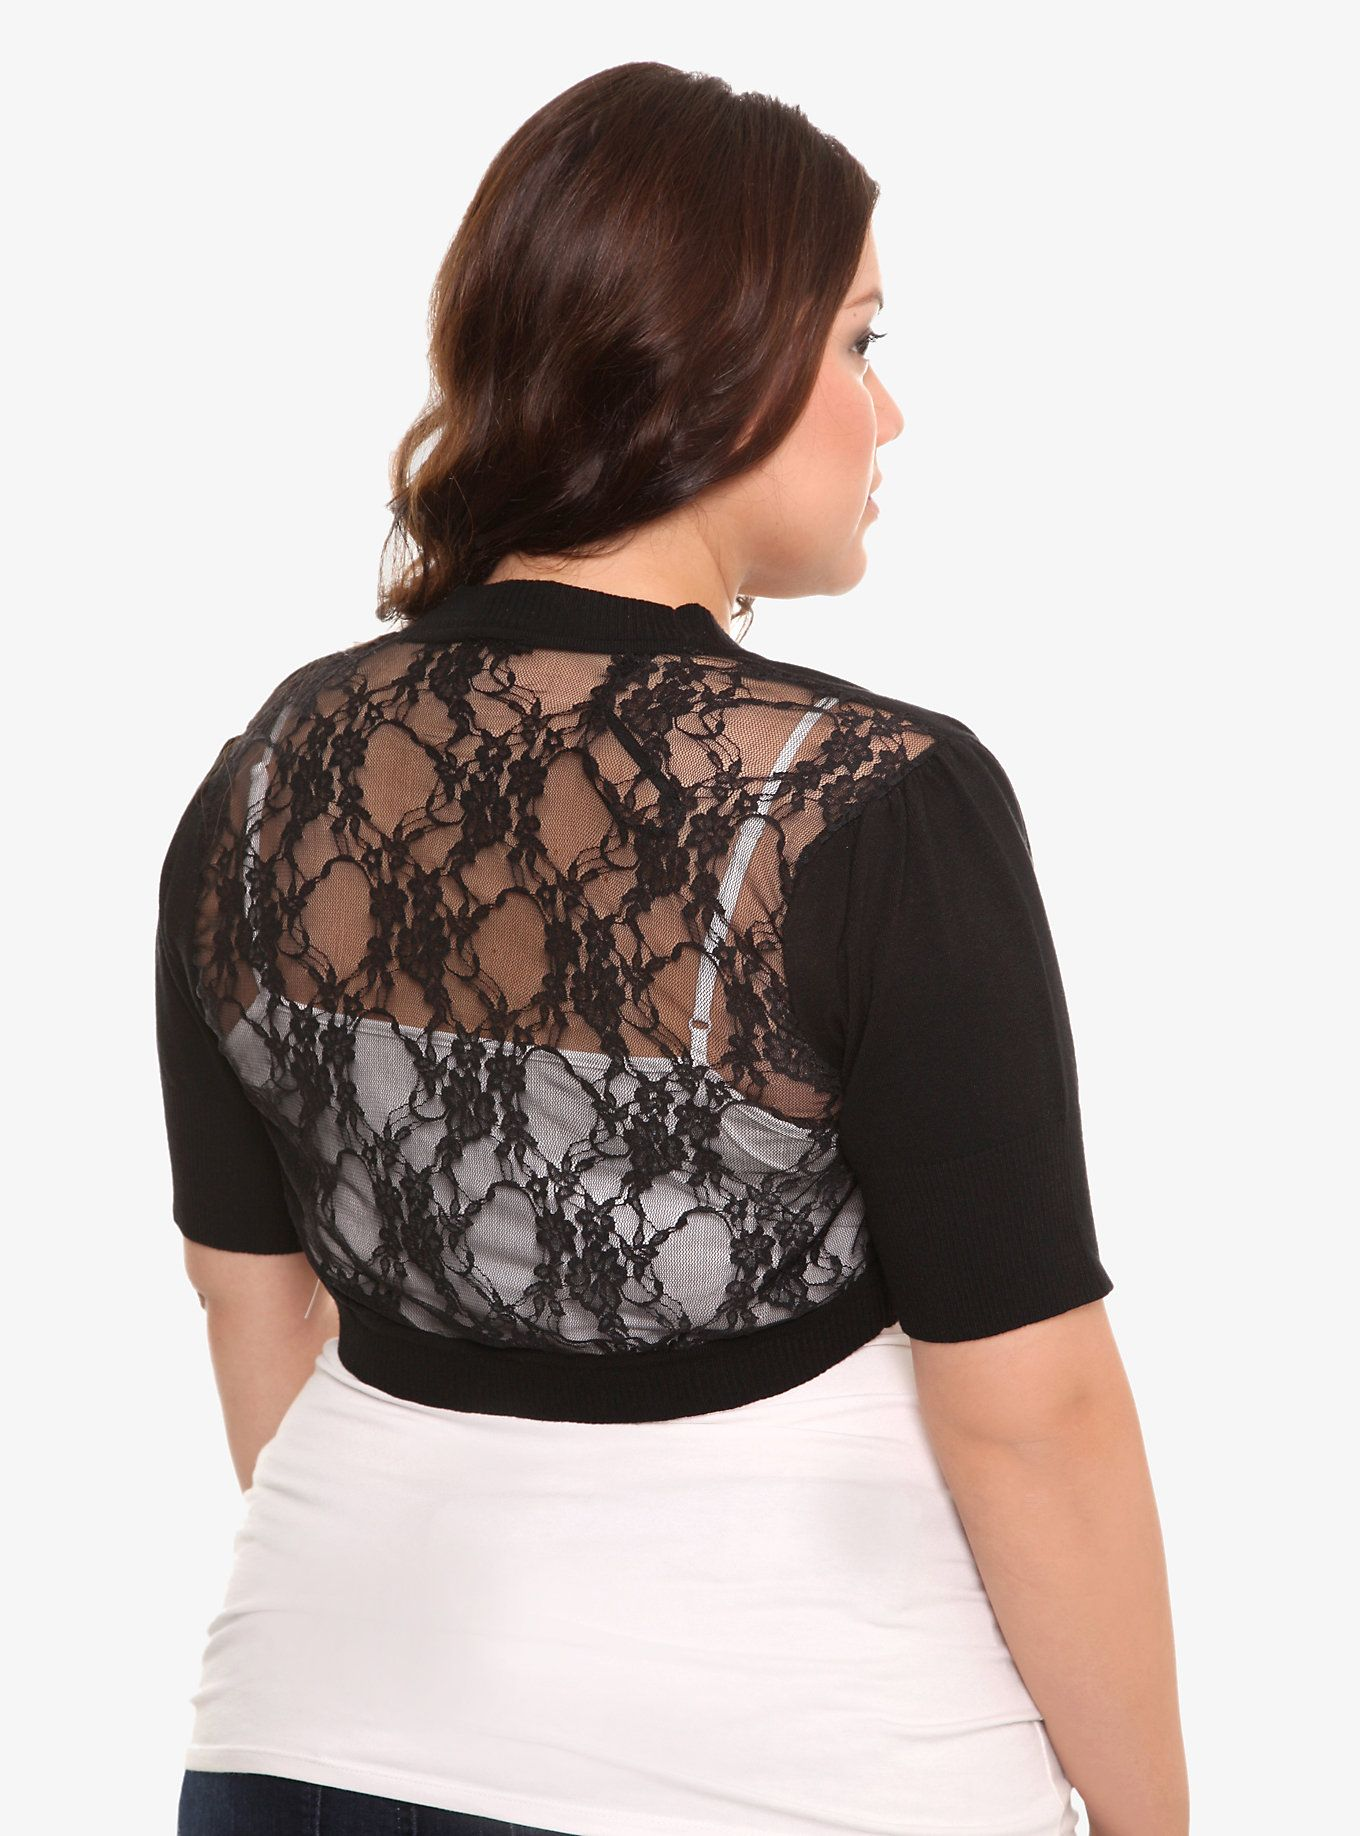 Lace dress torrid  Lace Back Shrug  Torrid Hot topic and Floral lace